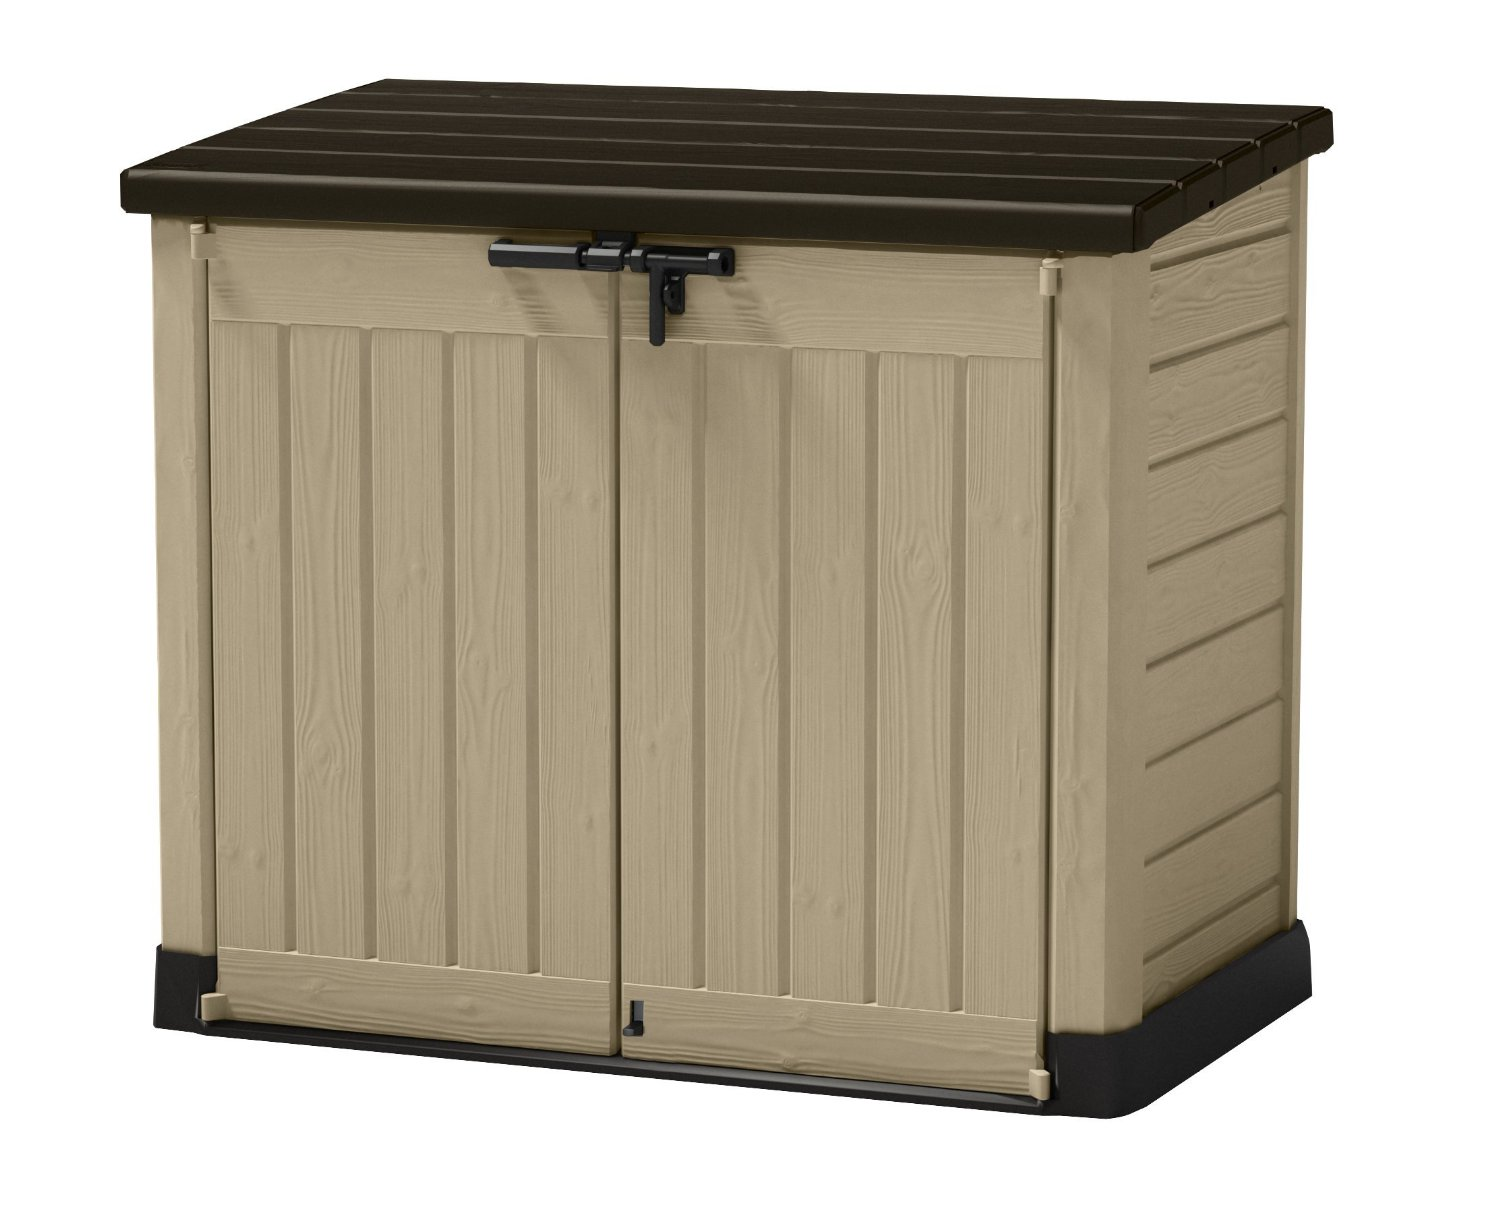 Keter Store It Out Max Resin Outdoor Garden Storage Shed